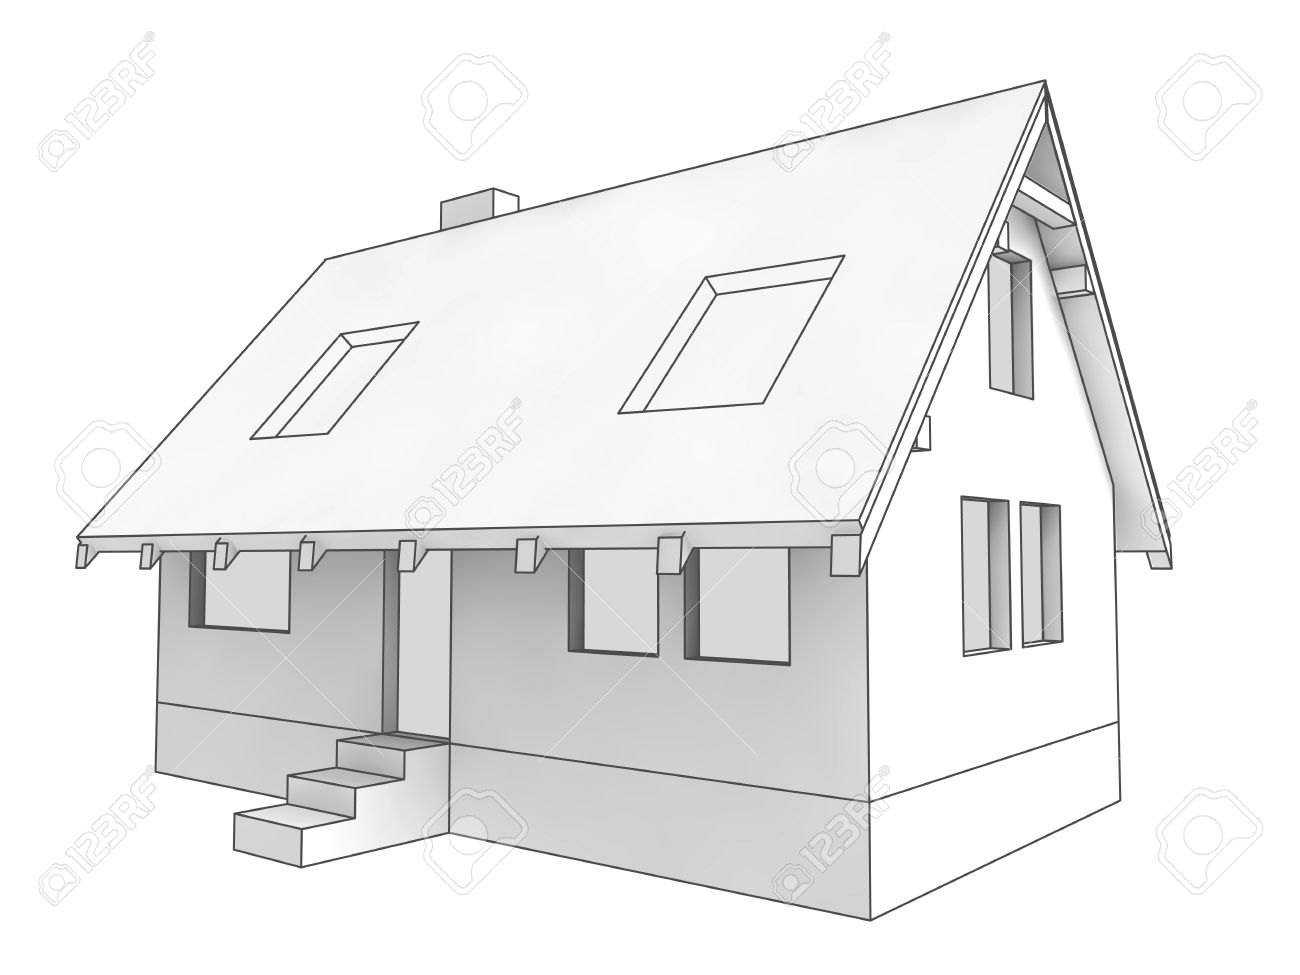 hight resolution of isolated diagram icon of new private house project illustration rh 123rf com diagram of house heating